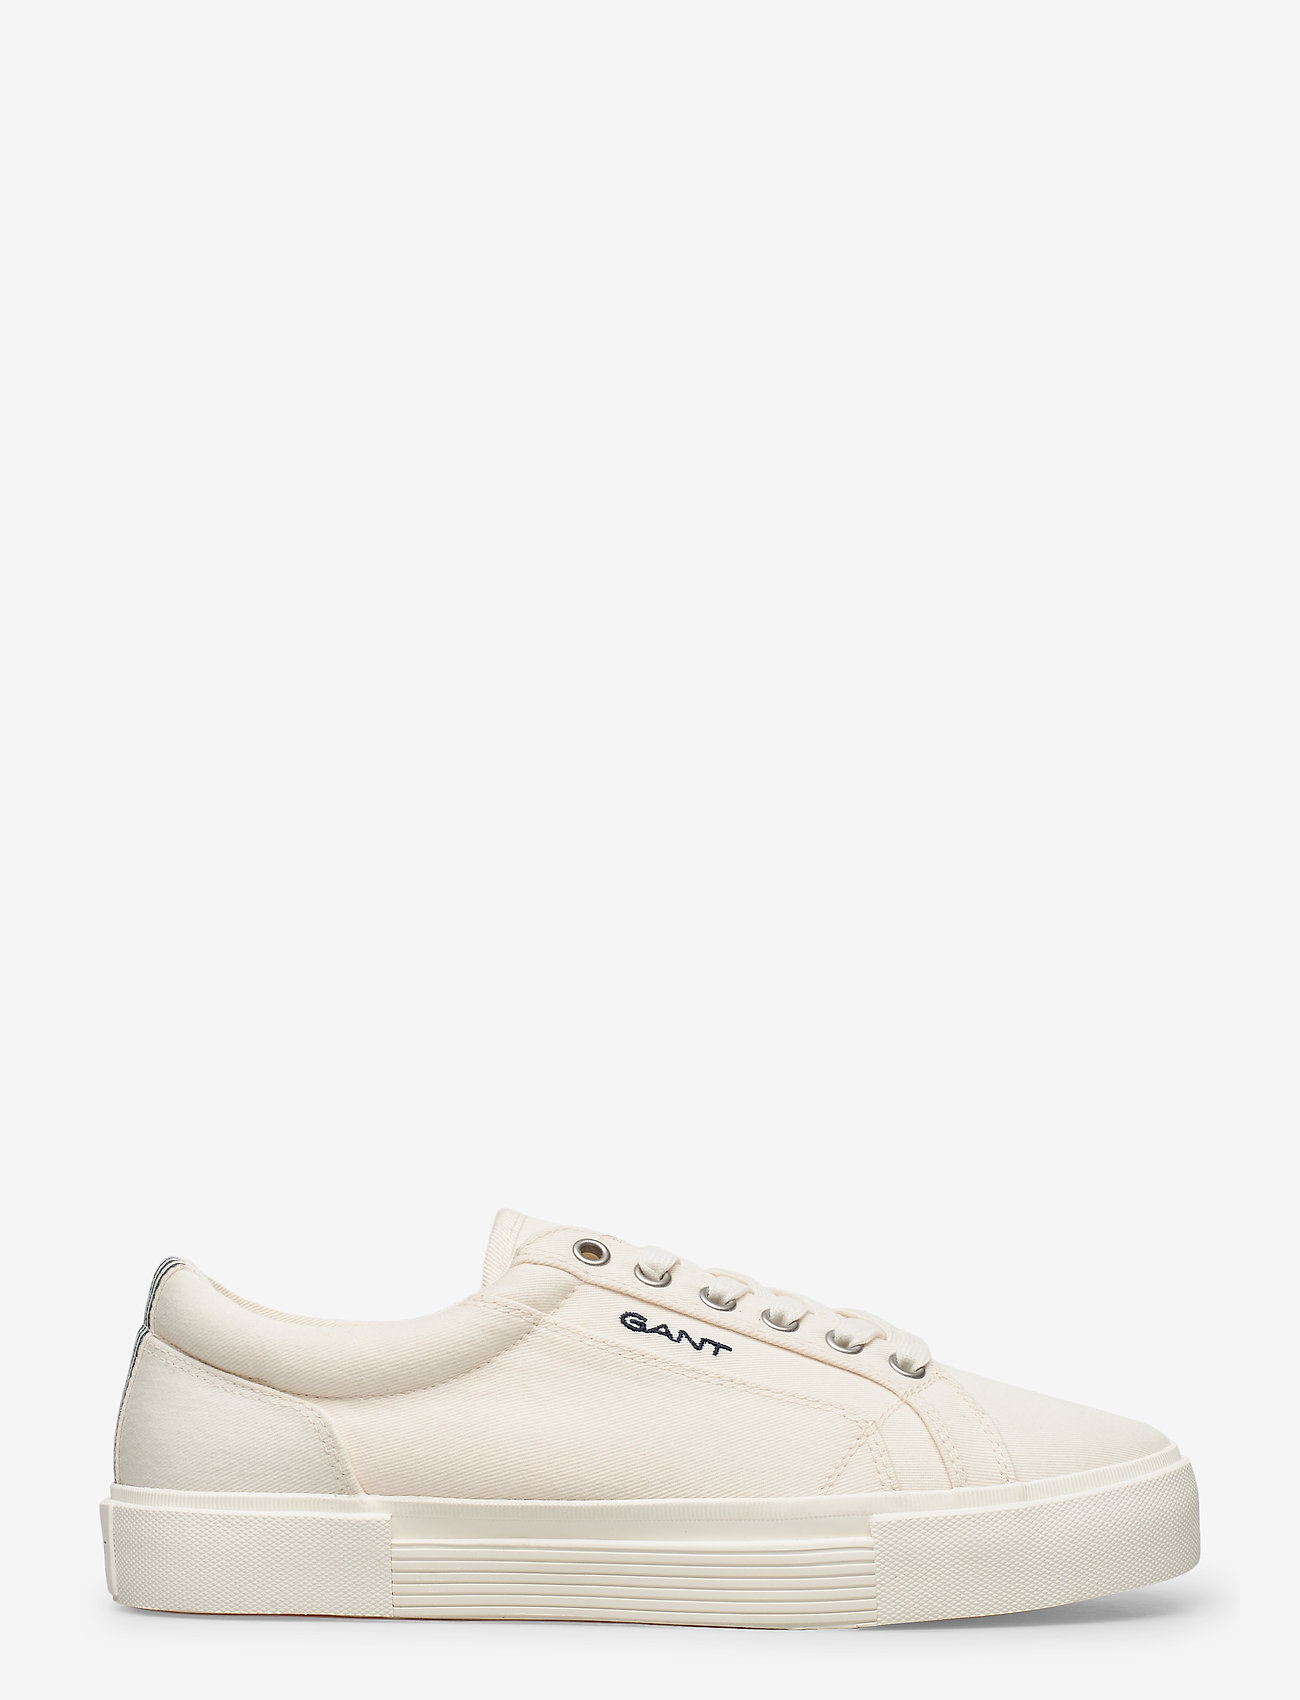 GANT - Champroyal Low laceshoes - low tops - off white - 1